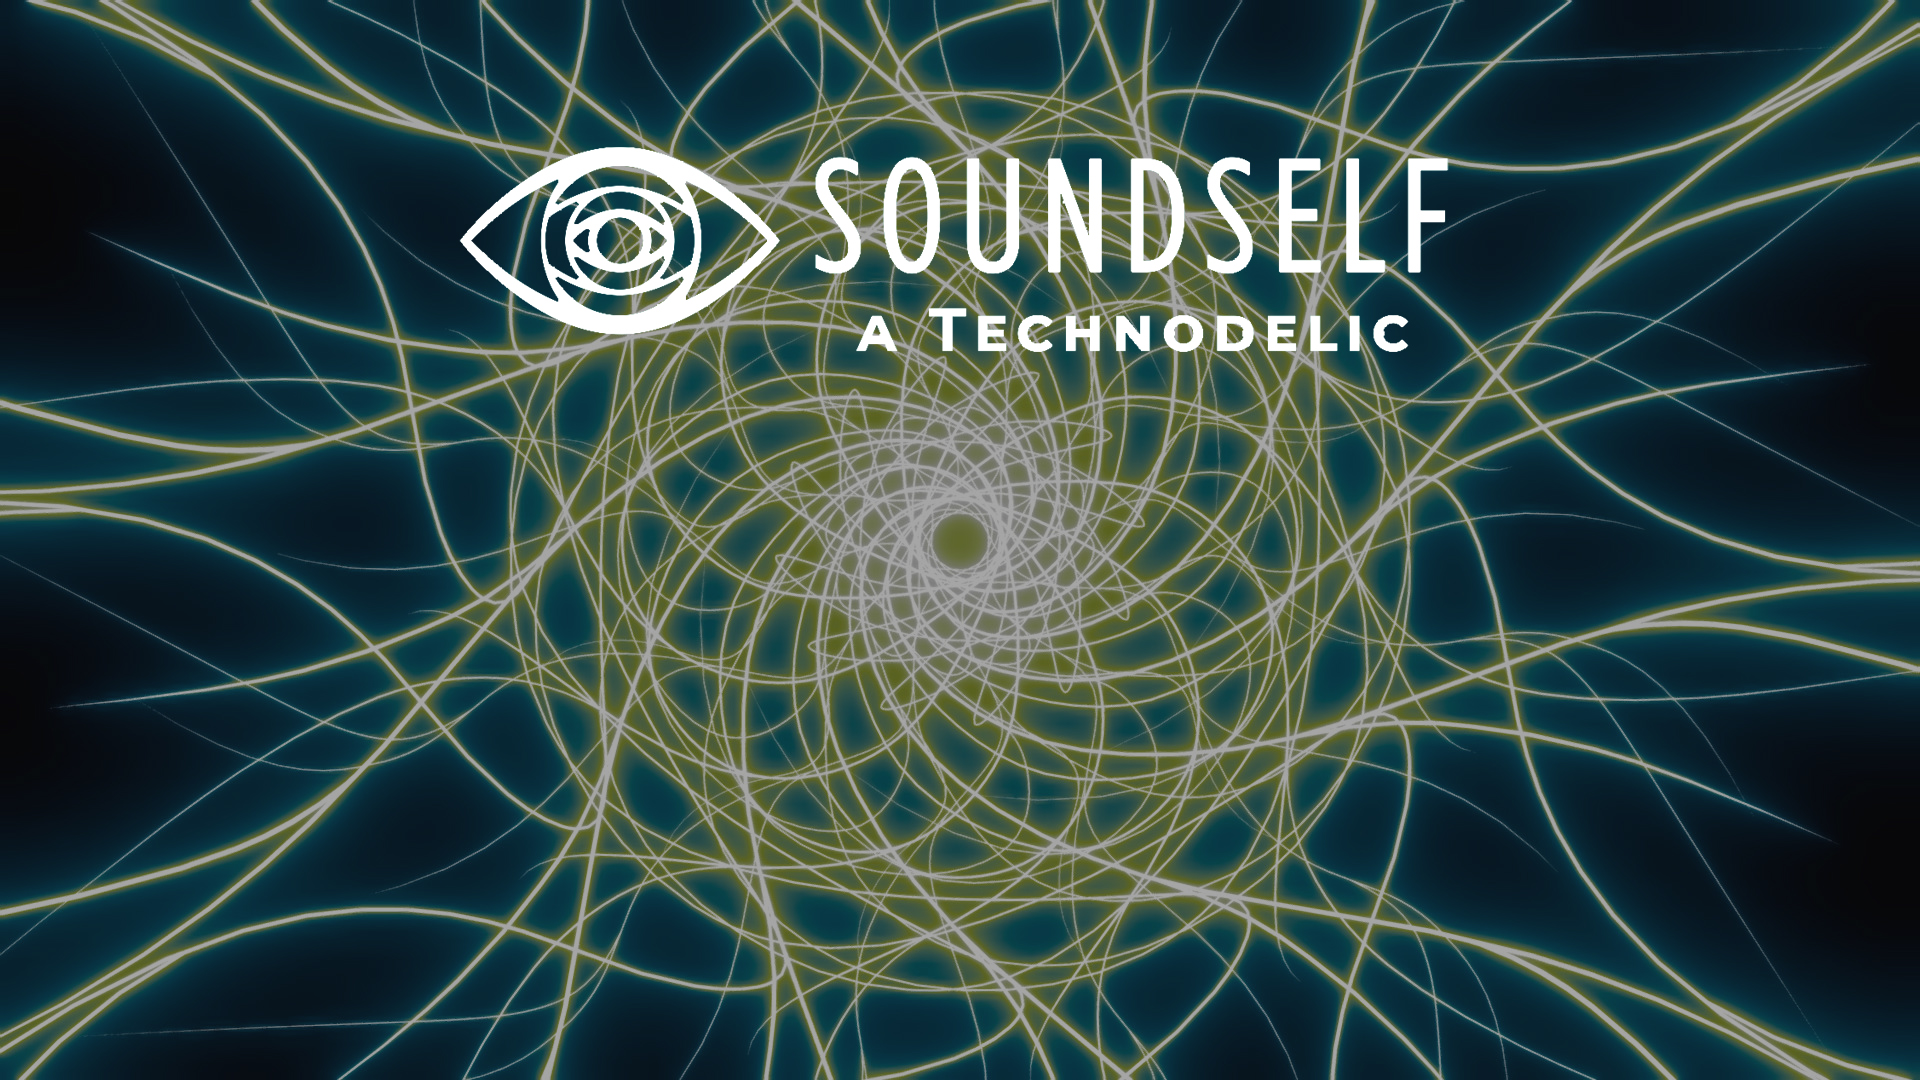 SoundSelf A Technodelic Free Download